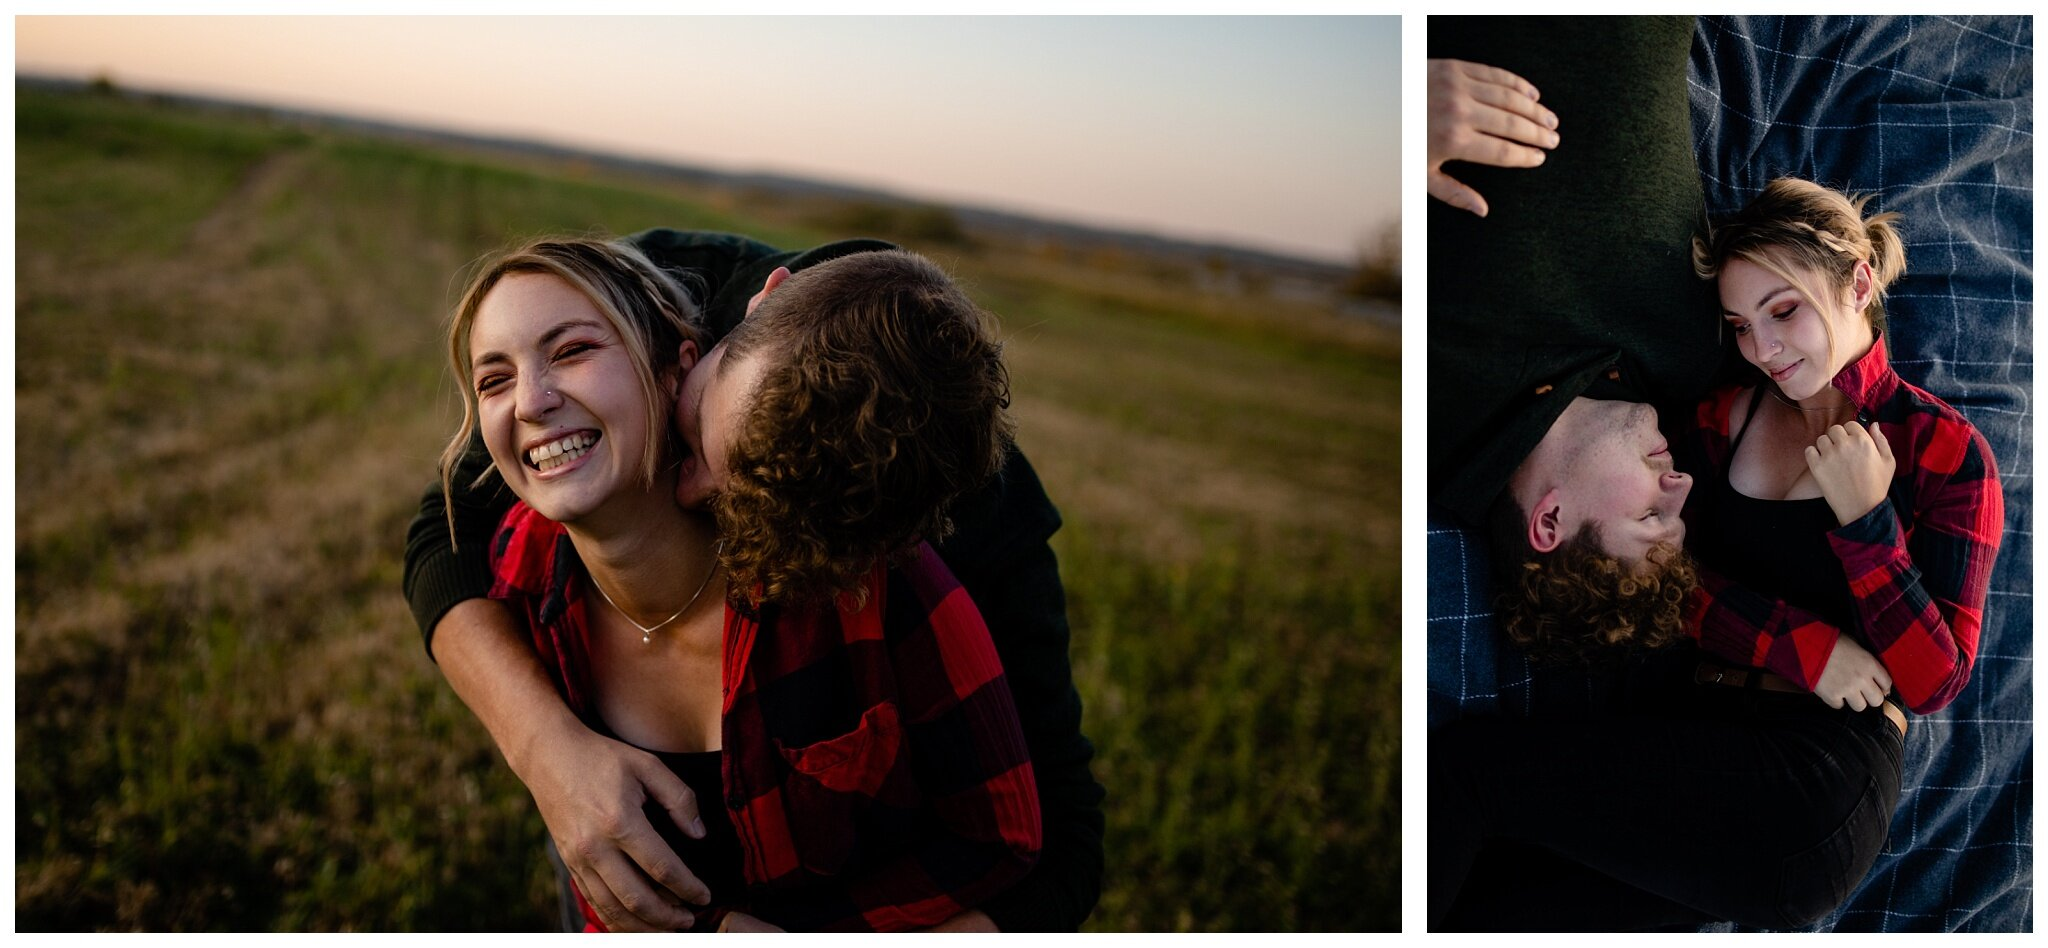 Spruce Grove Engagement Photographer Couples Connection Romantic Photography_0008.jpg